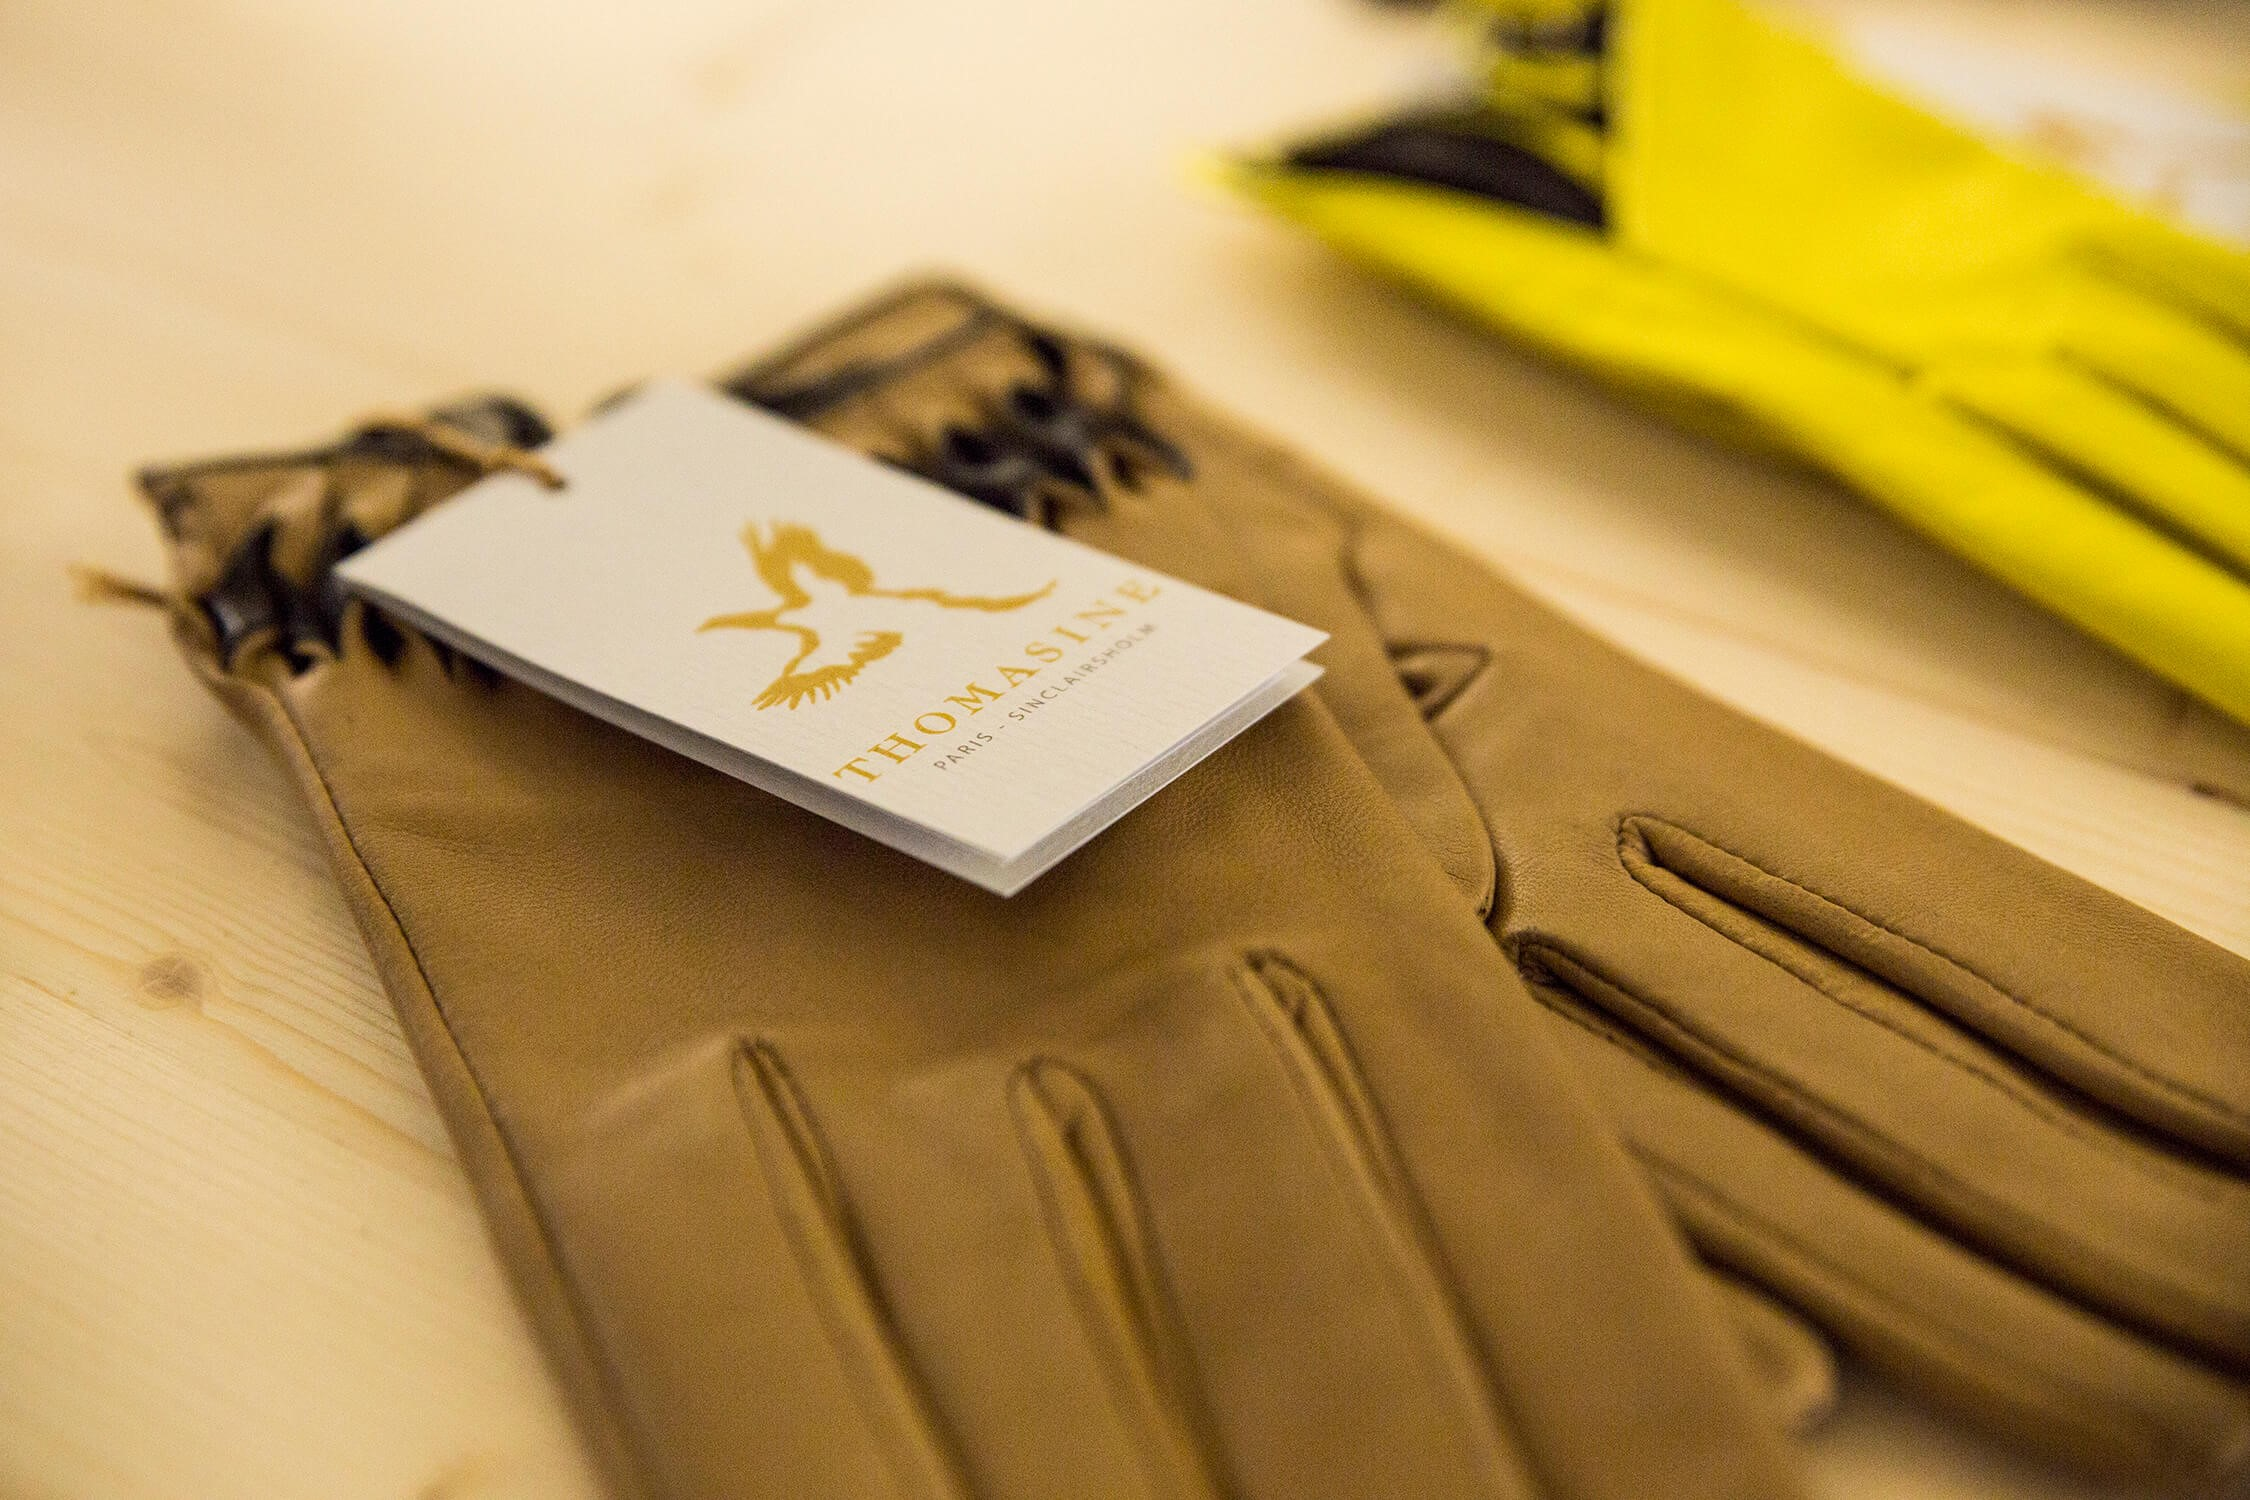 Leather Gloves by Thomasine Barnekow at Tick My Box x Yad Chei Pop-up Event - luxury craftsmanship